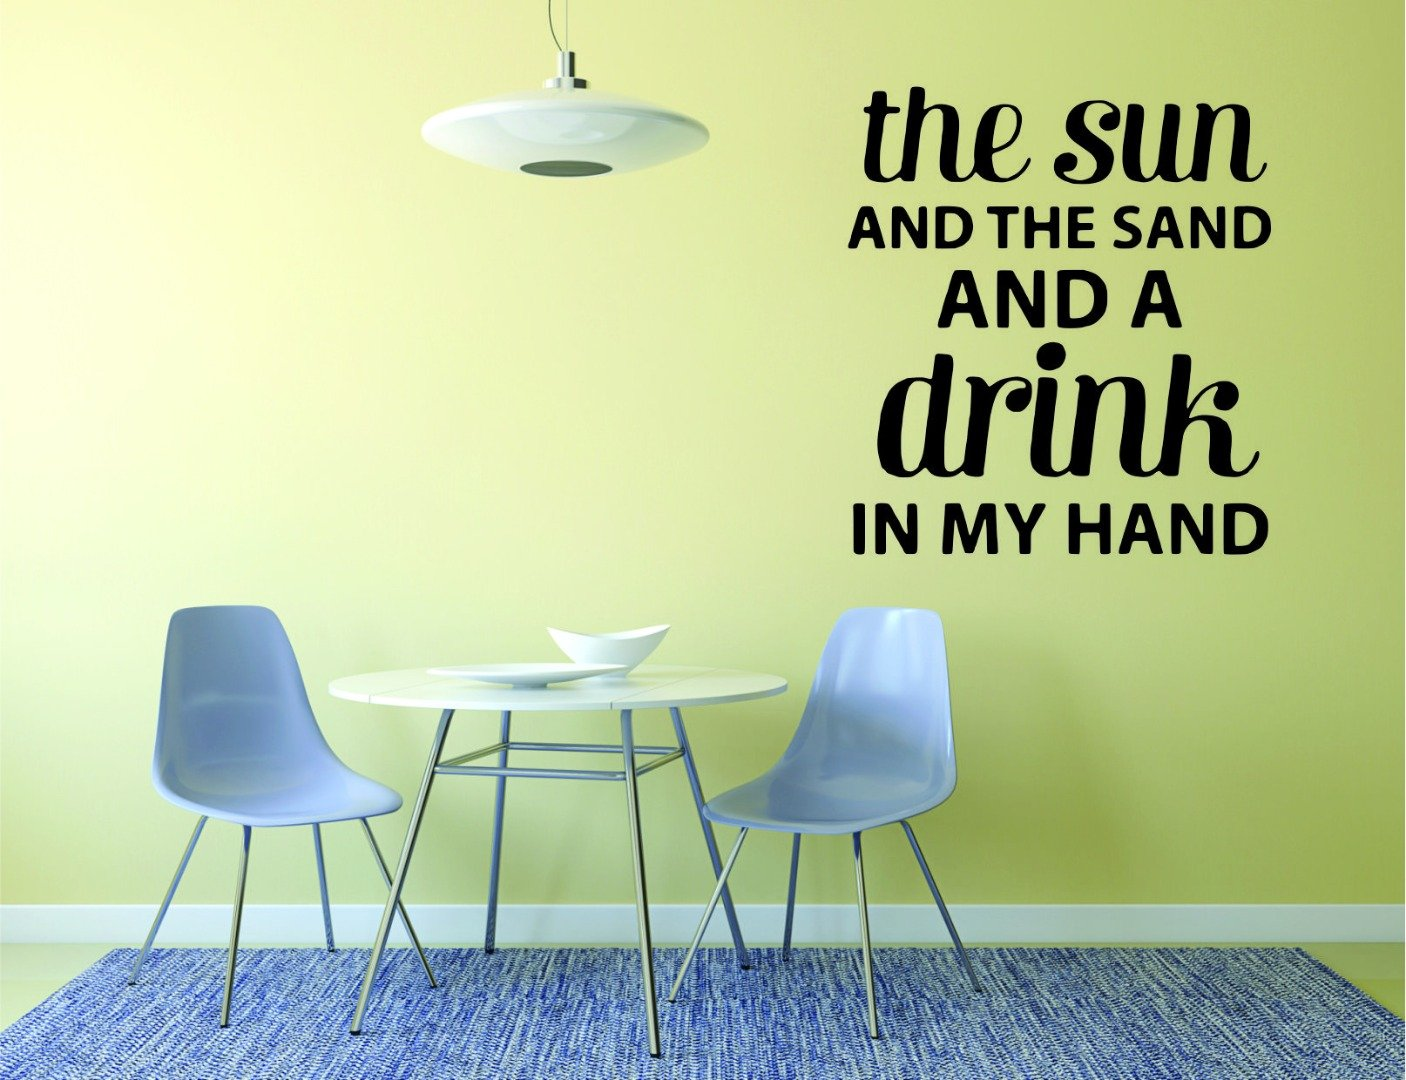 Vacation Fun Quote Relax Wall Decal 12 x 18 Black Design with Vinyl RAD 988 1 The Sun and The Sand and A Drink in My Hand